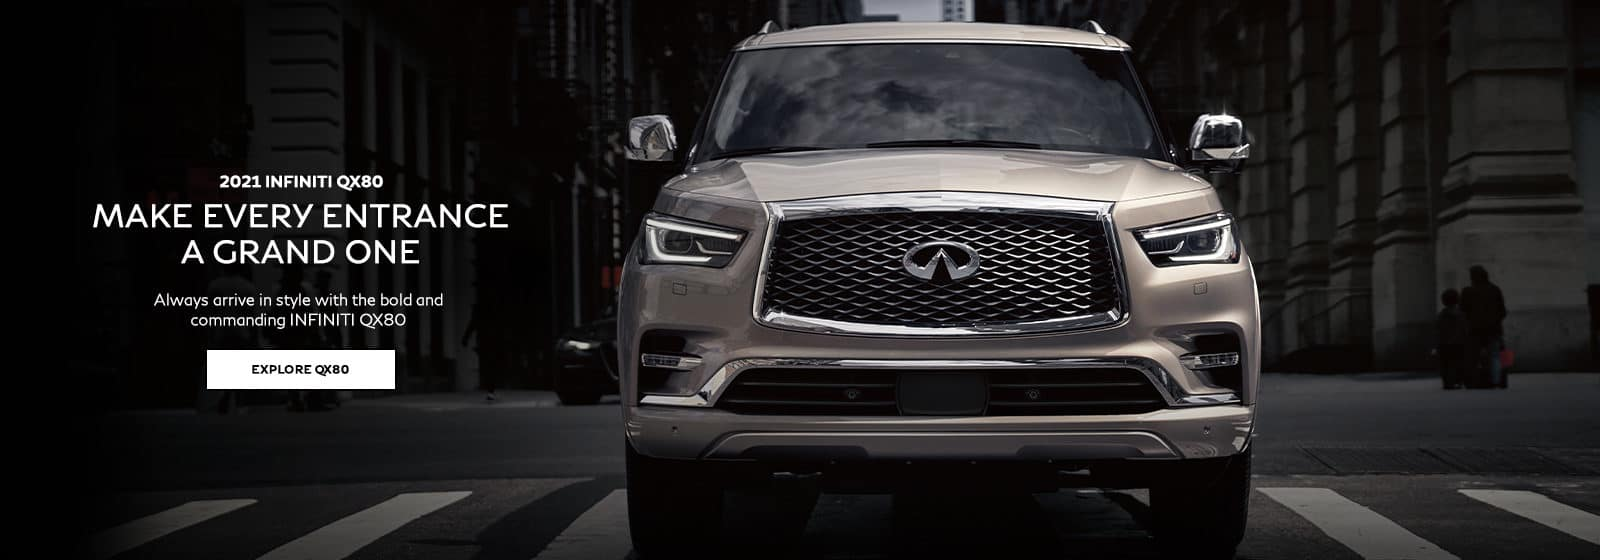 2021 INFINITI QX80 Make Every Entrance a Grand One. Always arrive in style with the bold and commanding INFINITI QX80. Click to explore QX80.